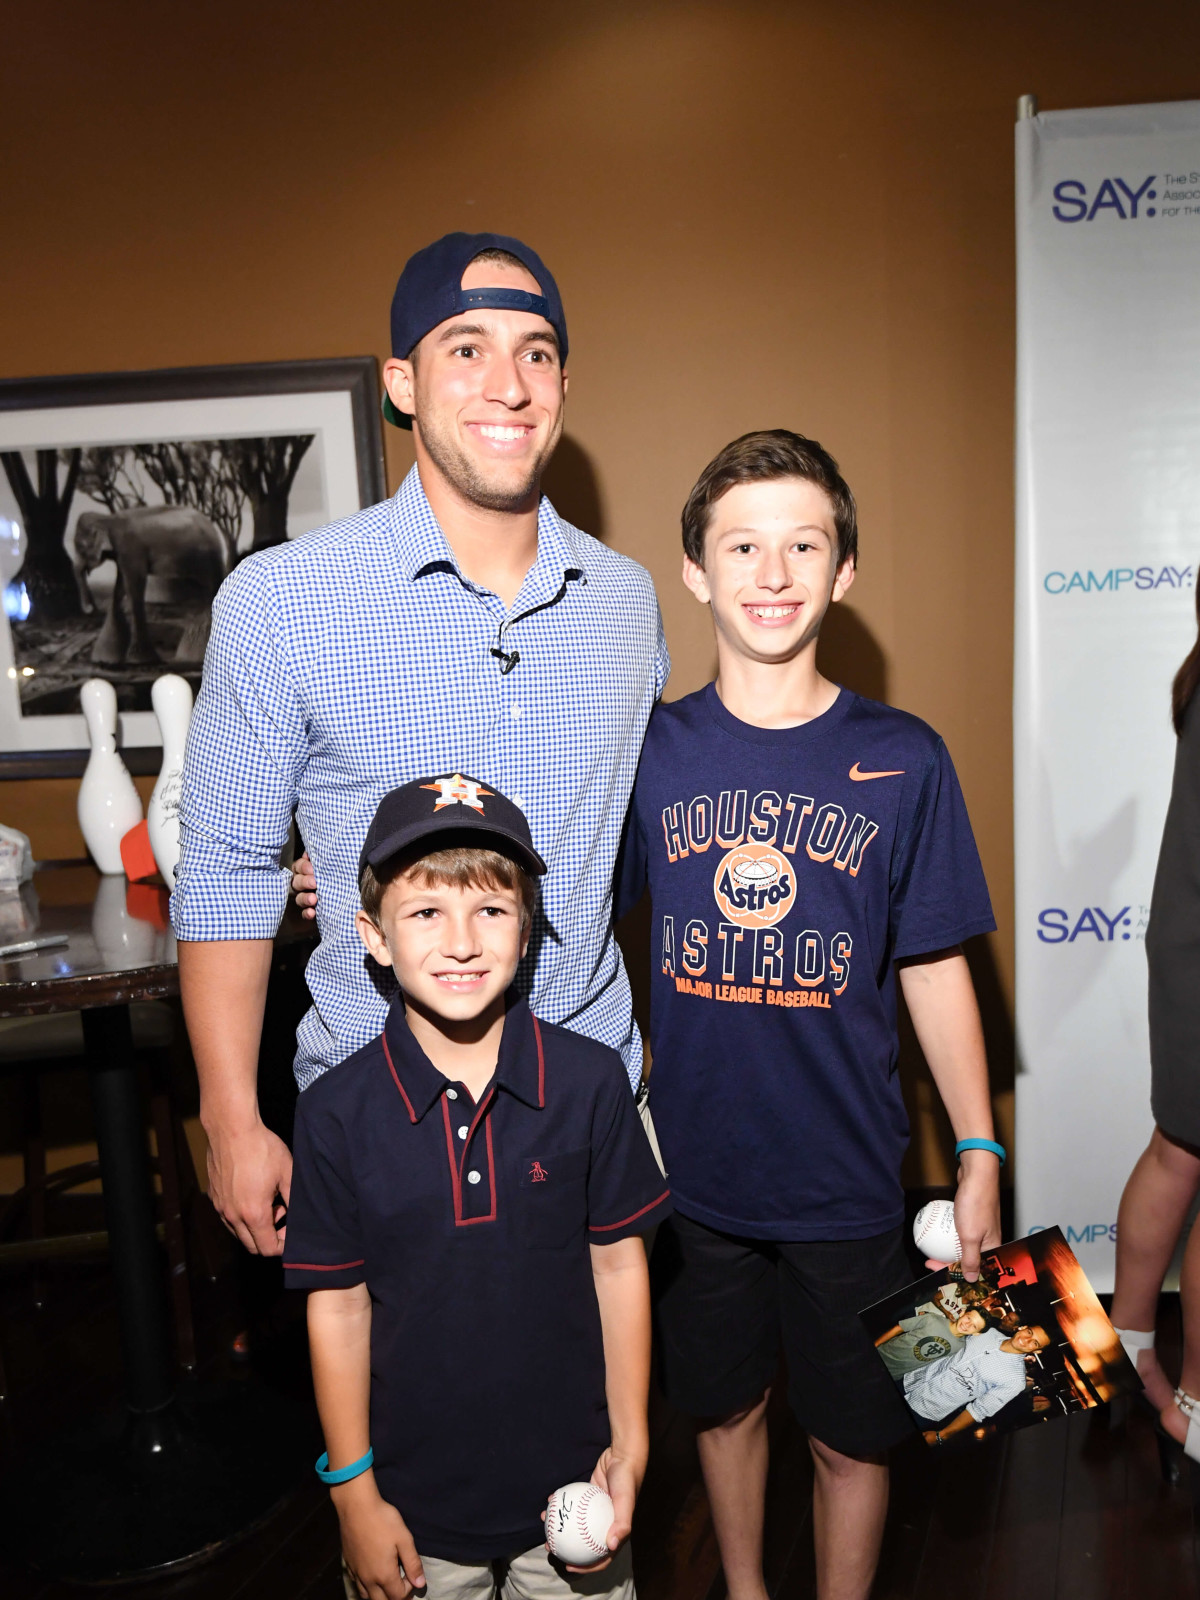 Houston, George Spring Bowling Event, June 2016, George Springer